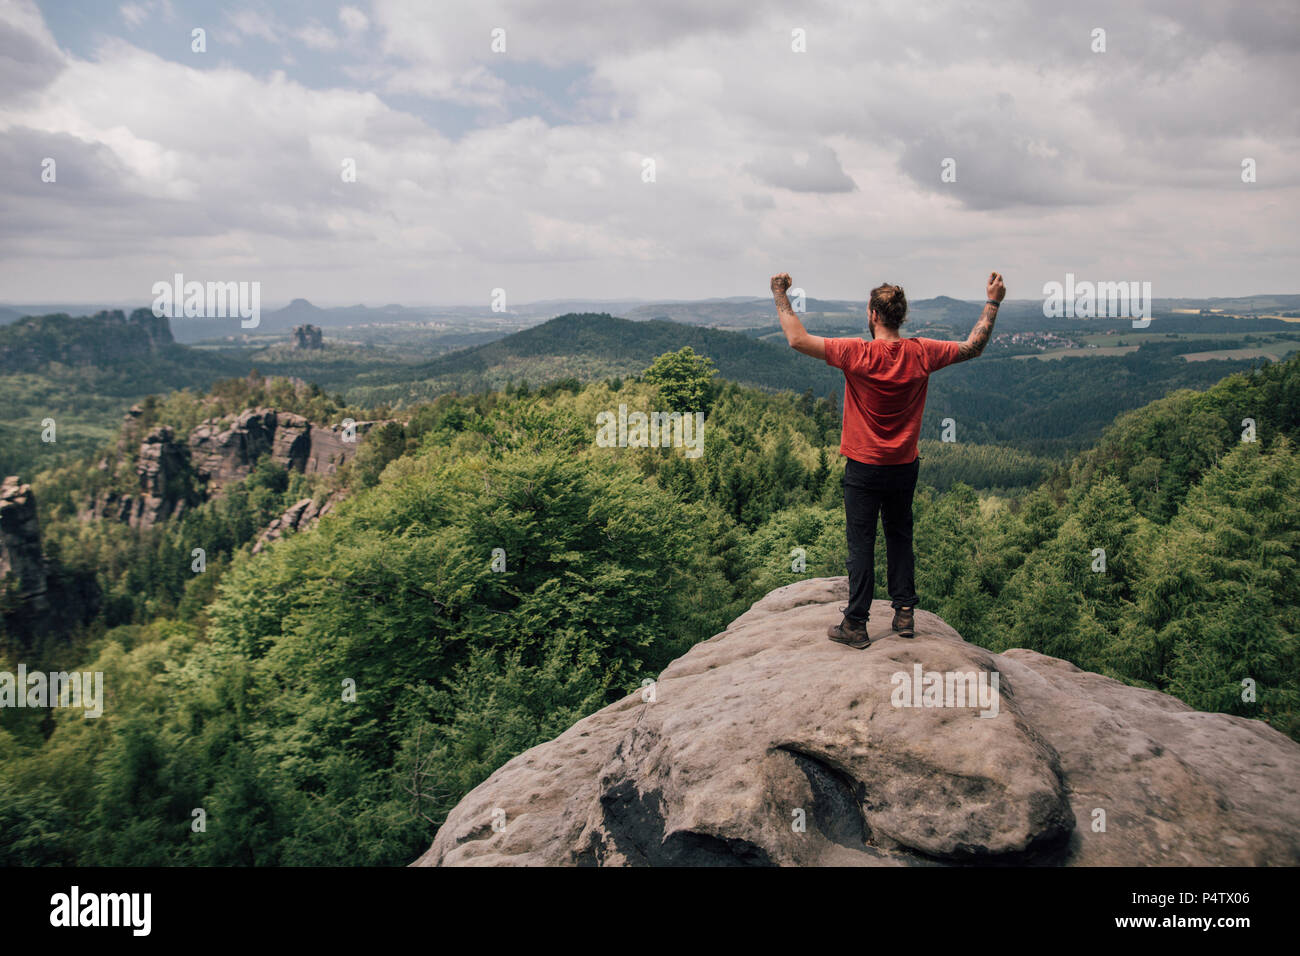 Germany, Saxony, Elbe Sandstone Mountains, man on a hiking trip standing on rock cheering Stock Photo